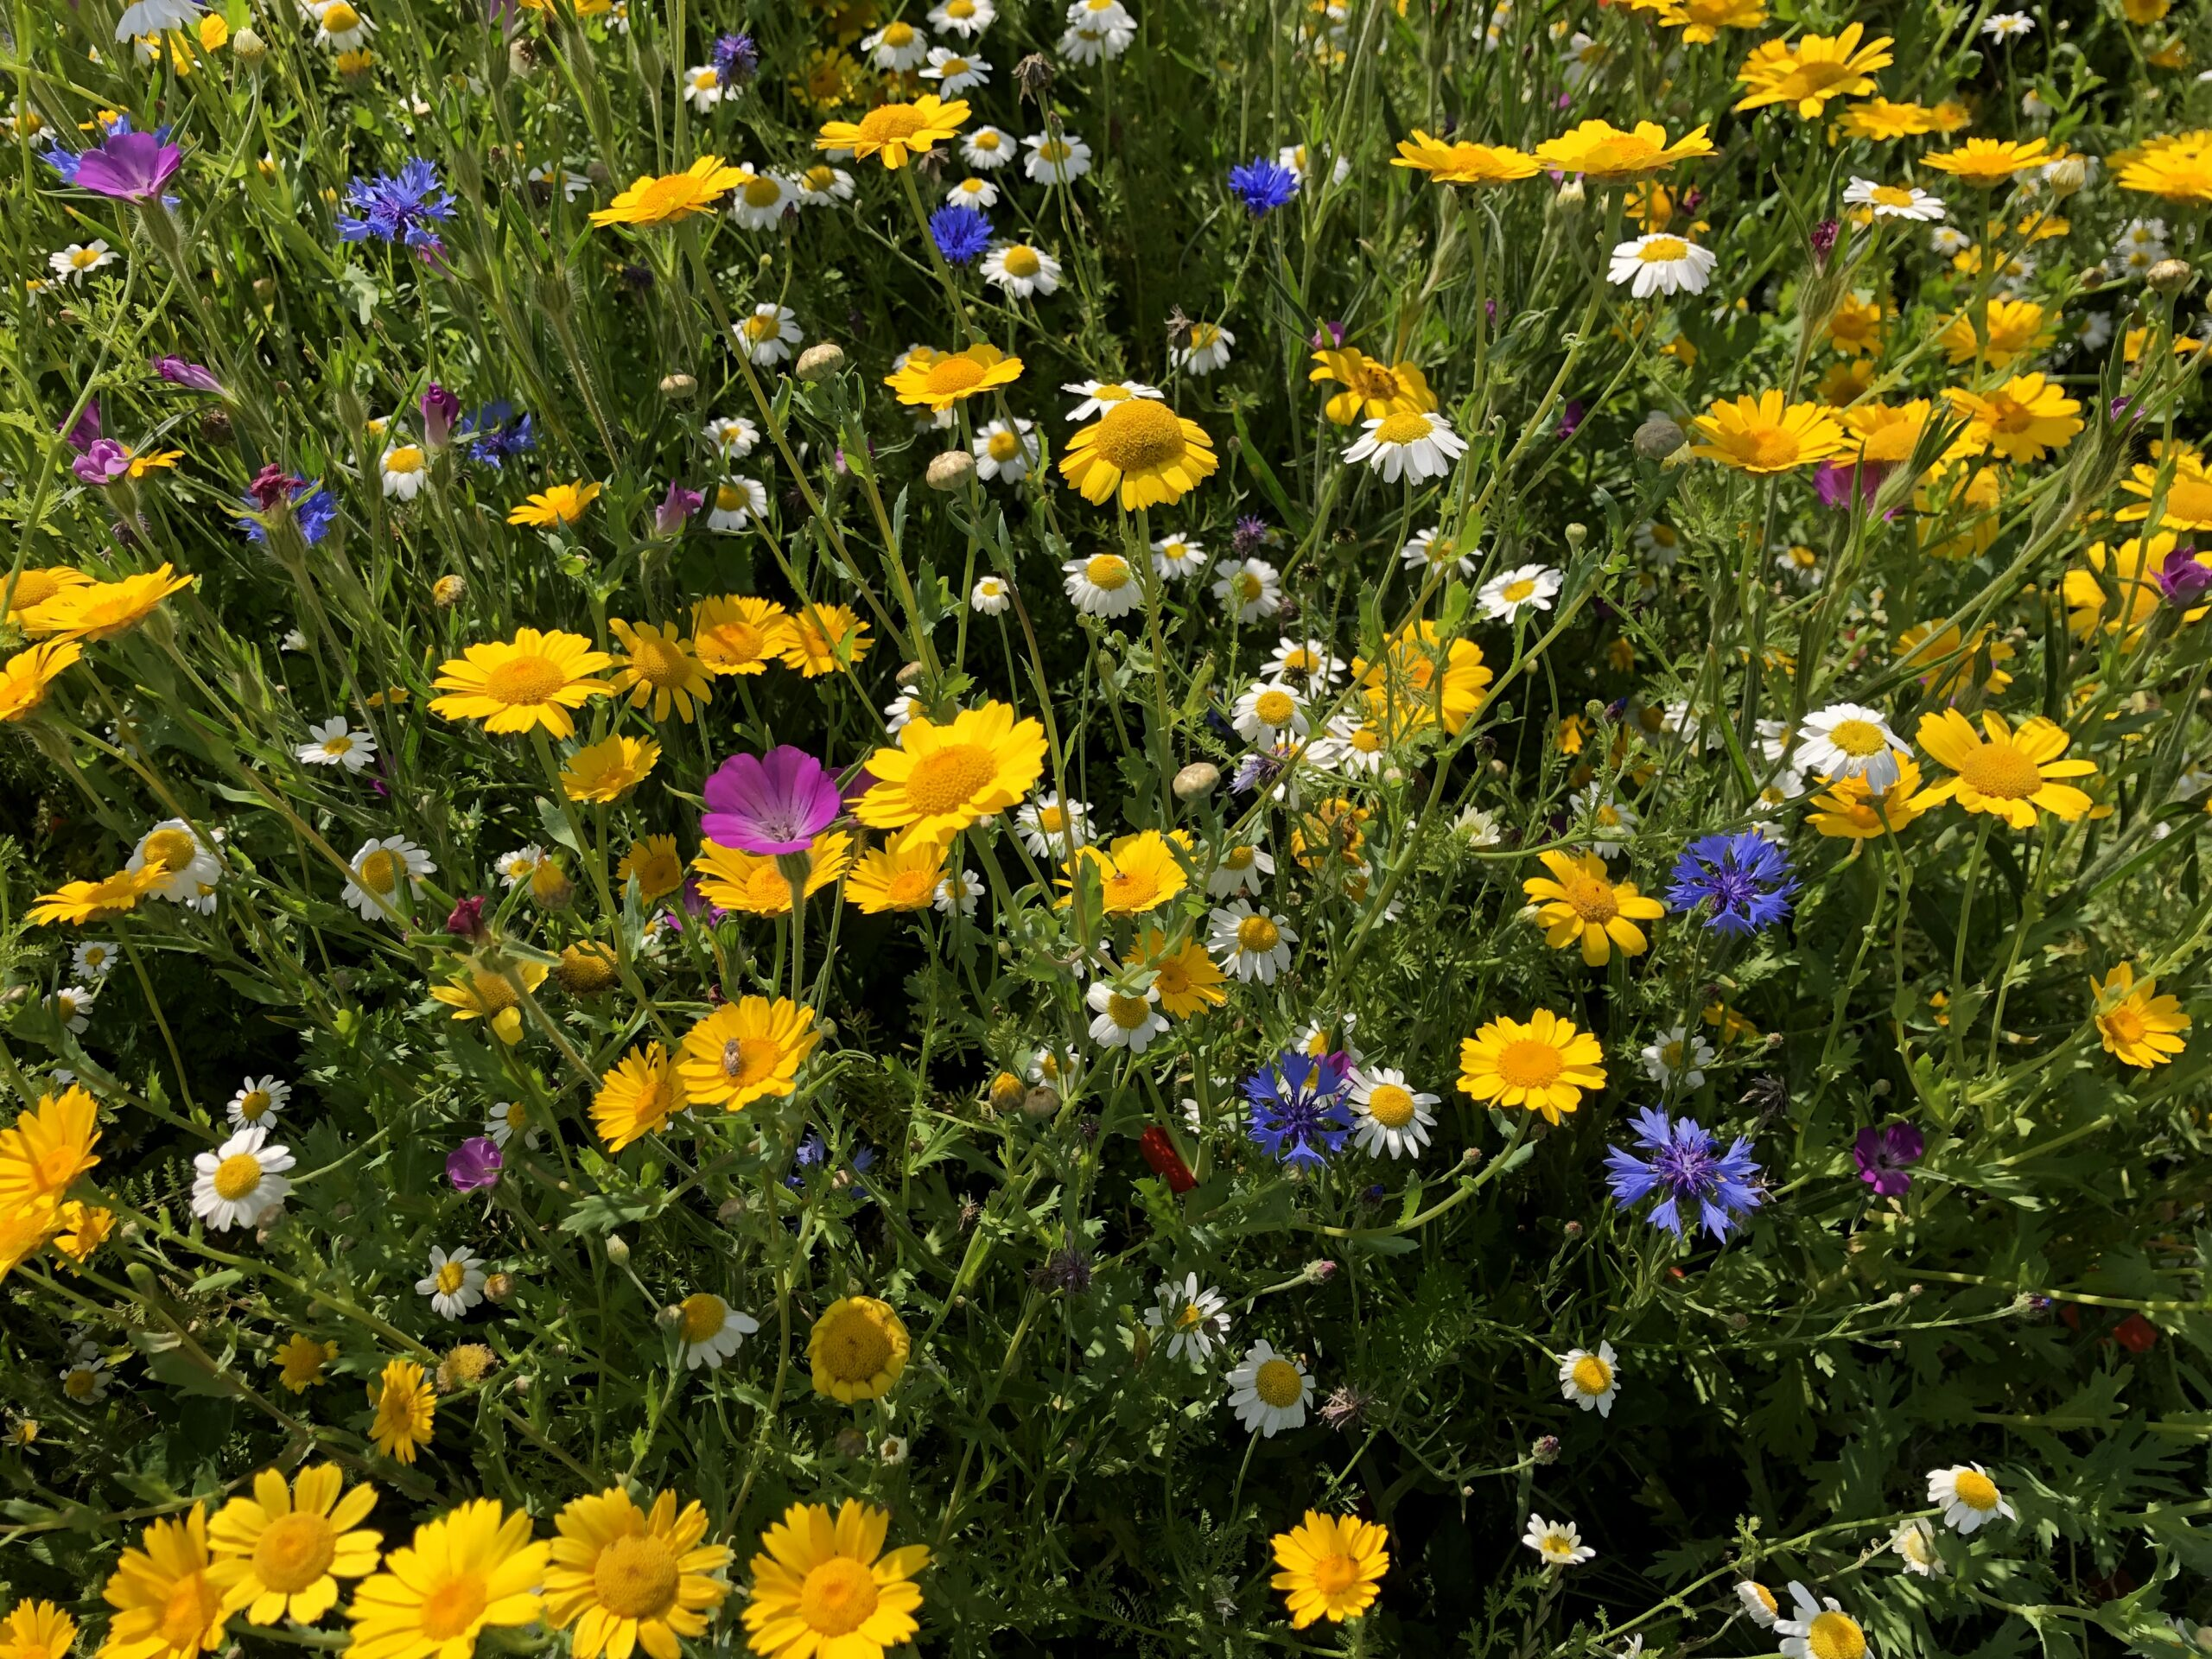 close up image of wildflowers